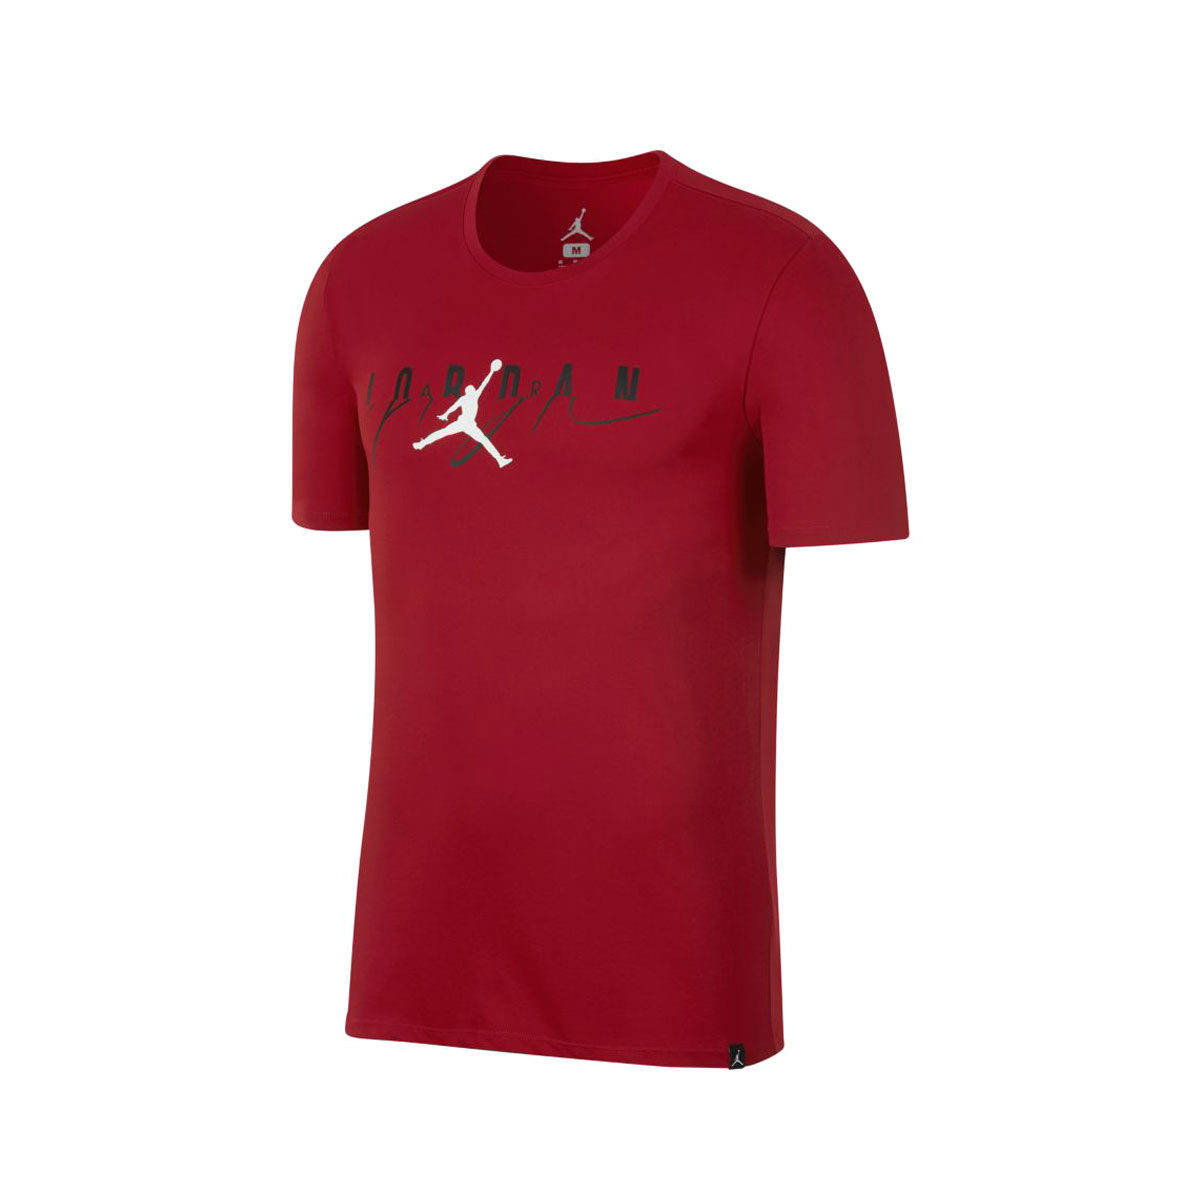 b86d3300b1b6f 58% cotton, a short sleeve T-shirt of the 42% polyester material adoption.  FLIGHT is graphic at the front desk.